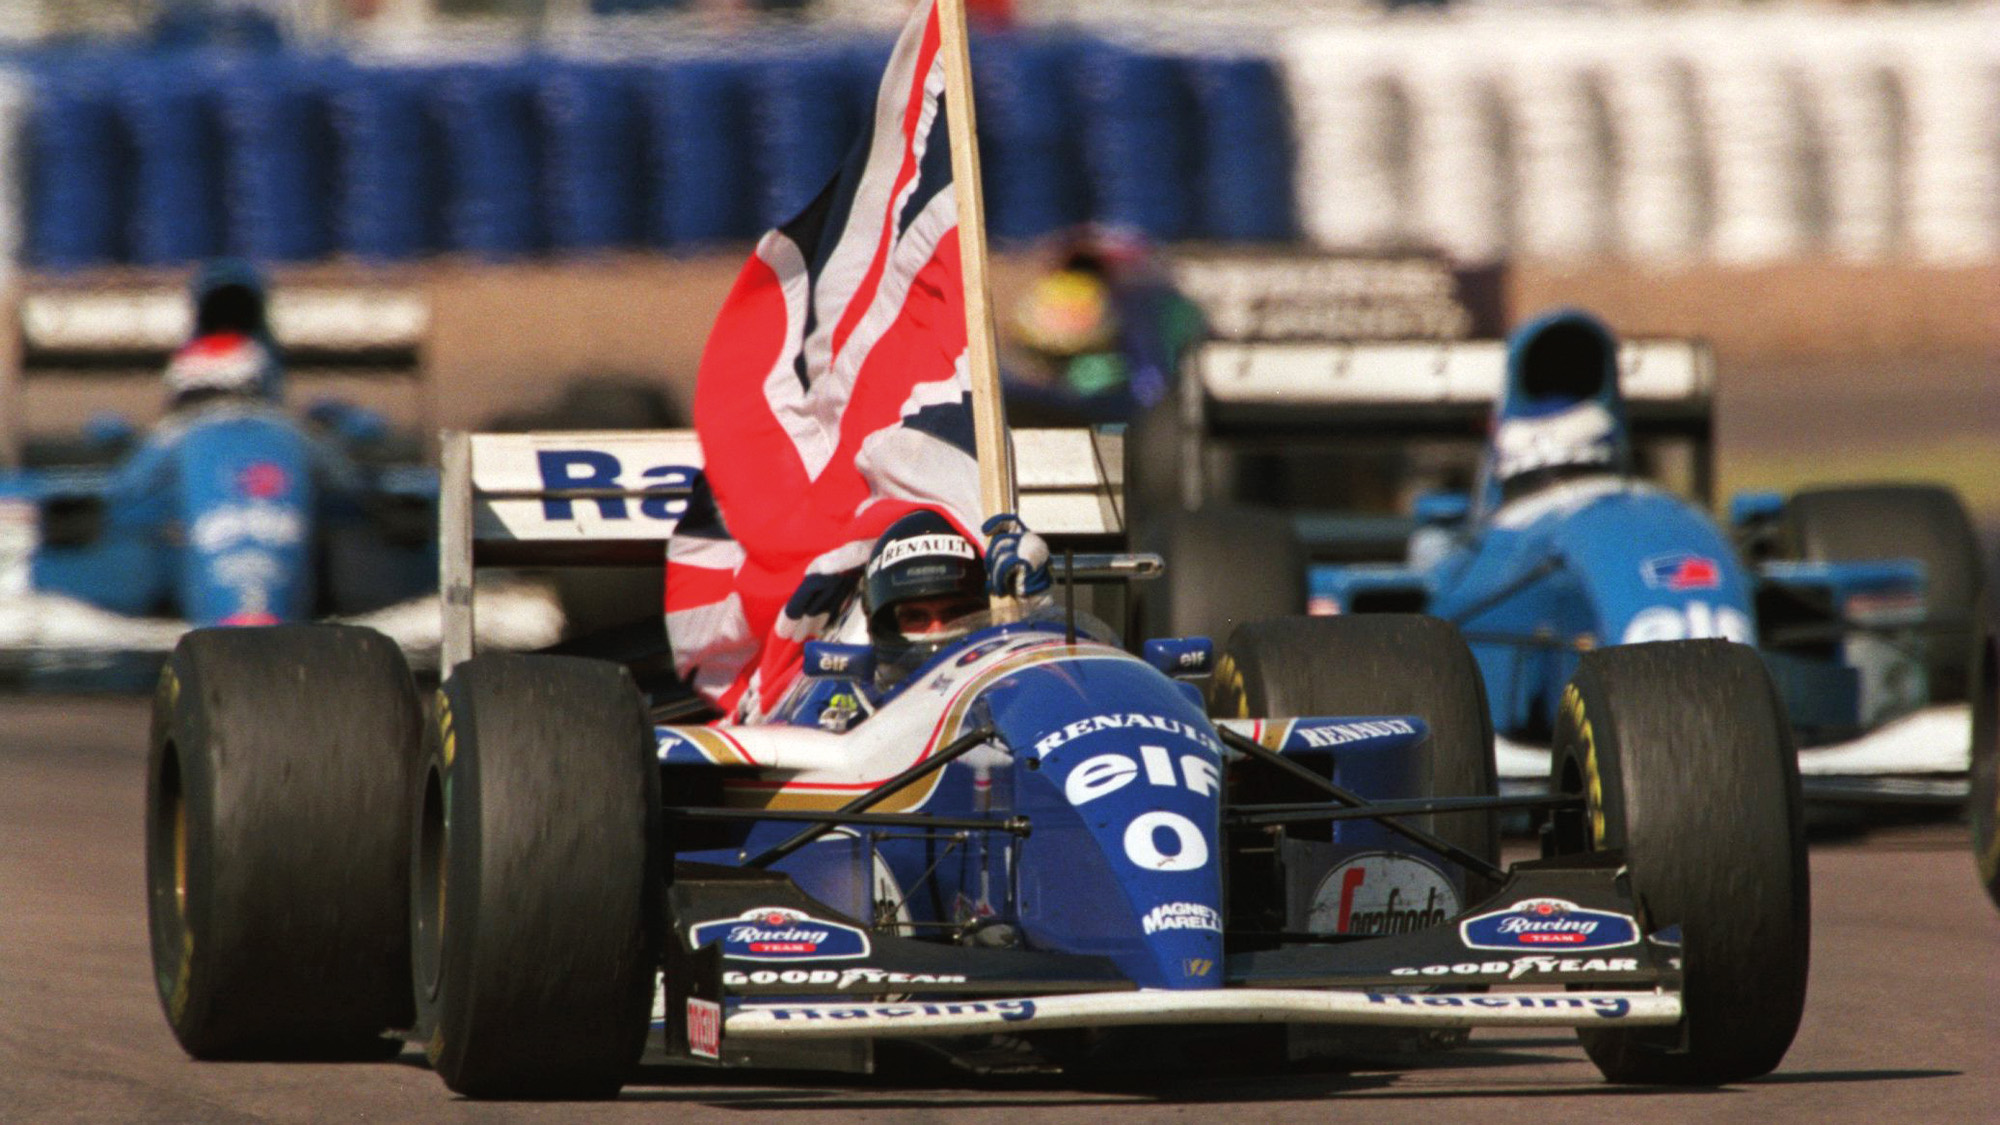 Damon Hill holds a Union flag in his Williams after winning the 1994 British Grand Prix at Silverstone